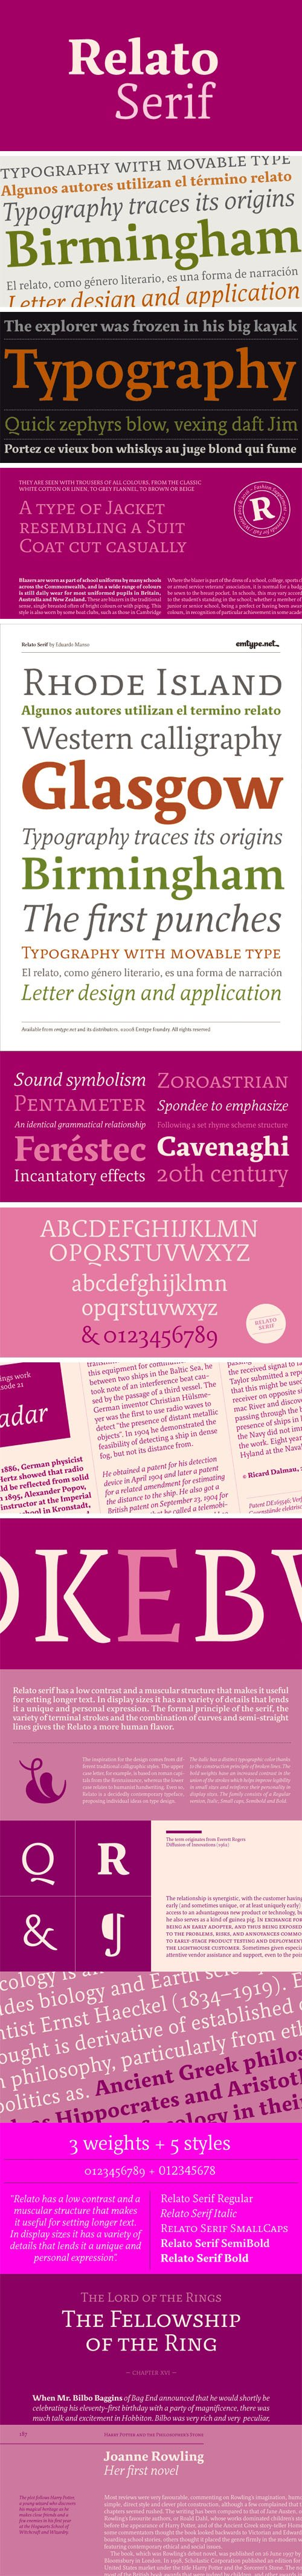 Relato Serif Font Family [5-Weights]